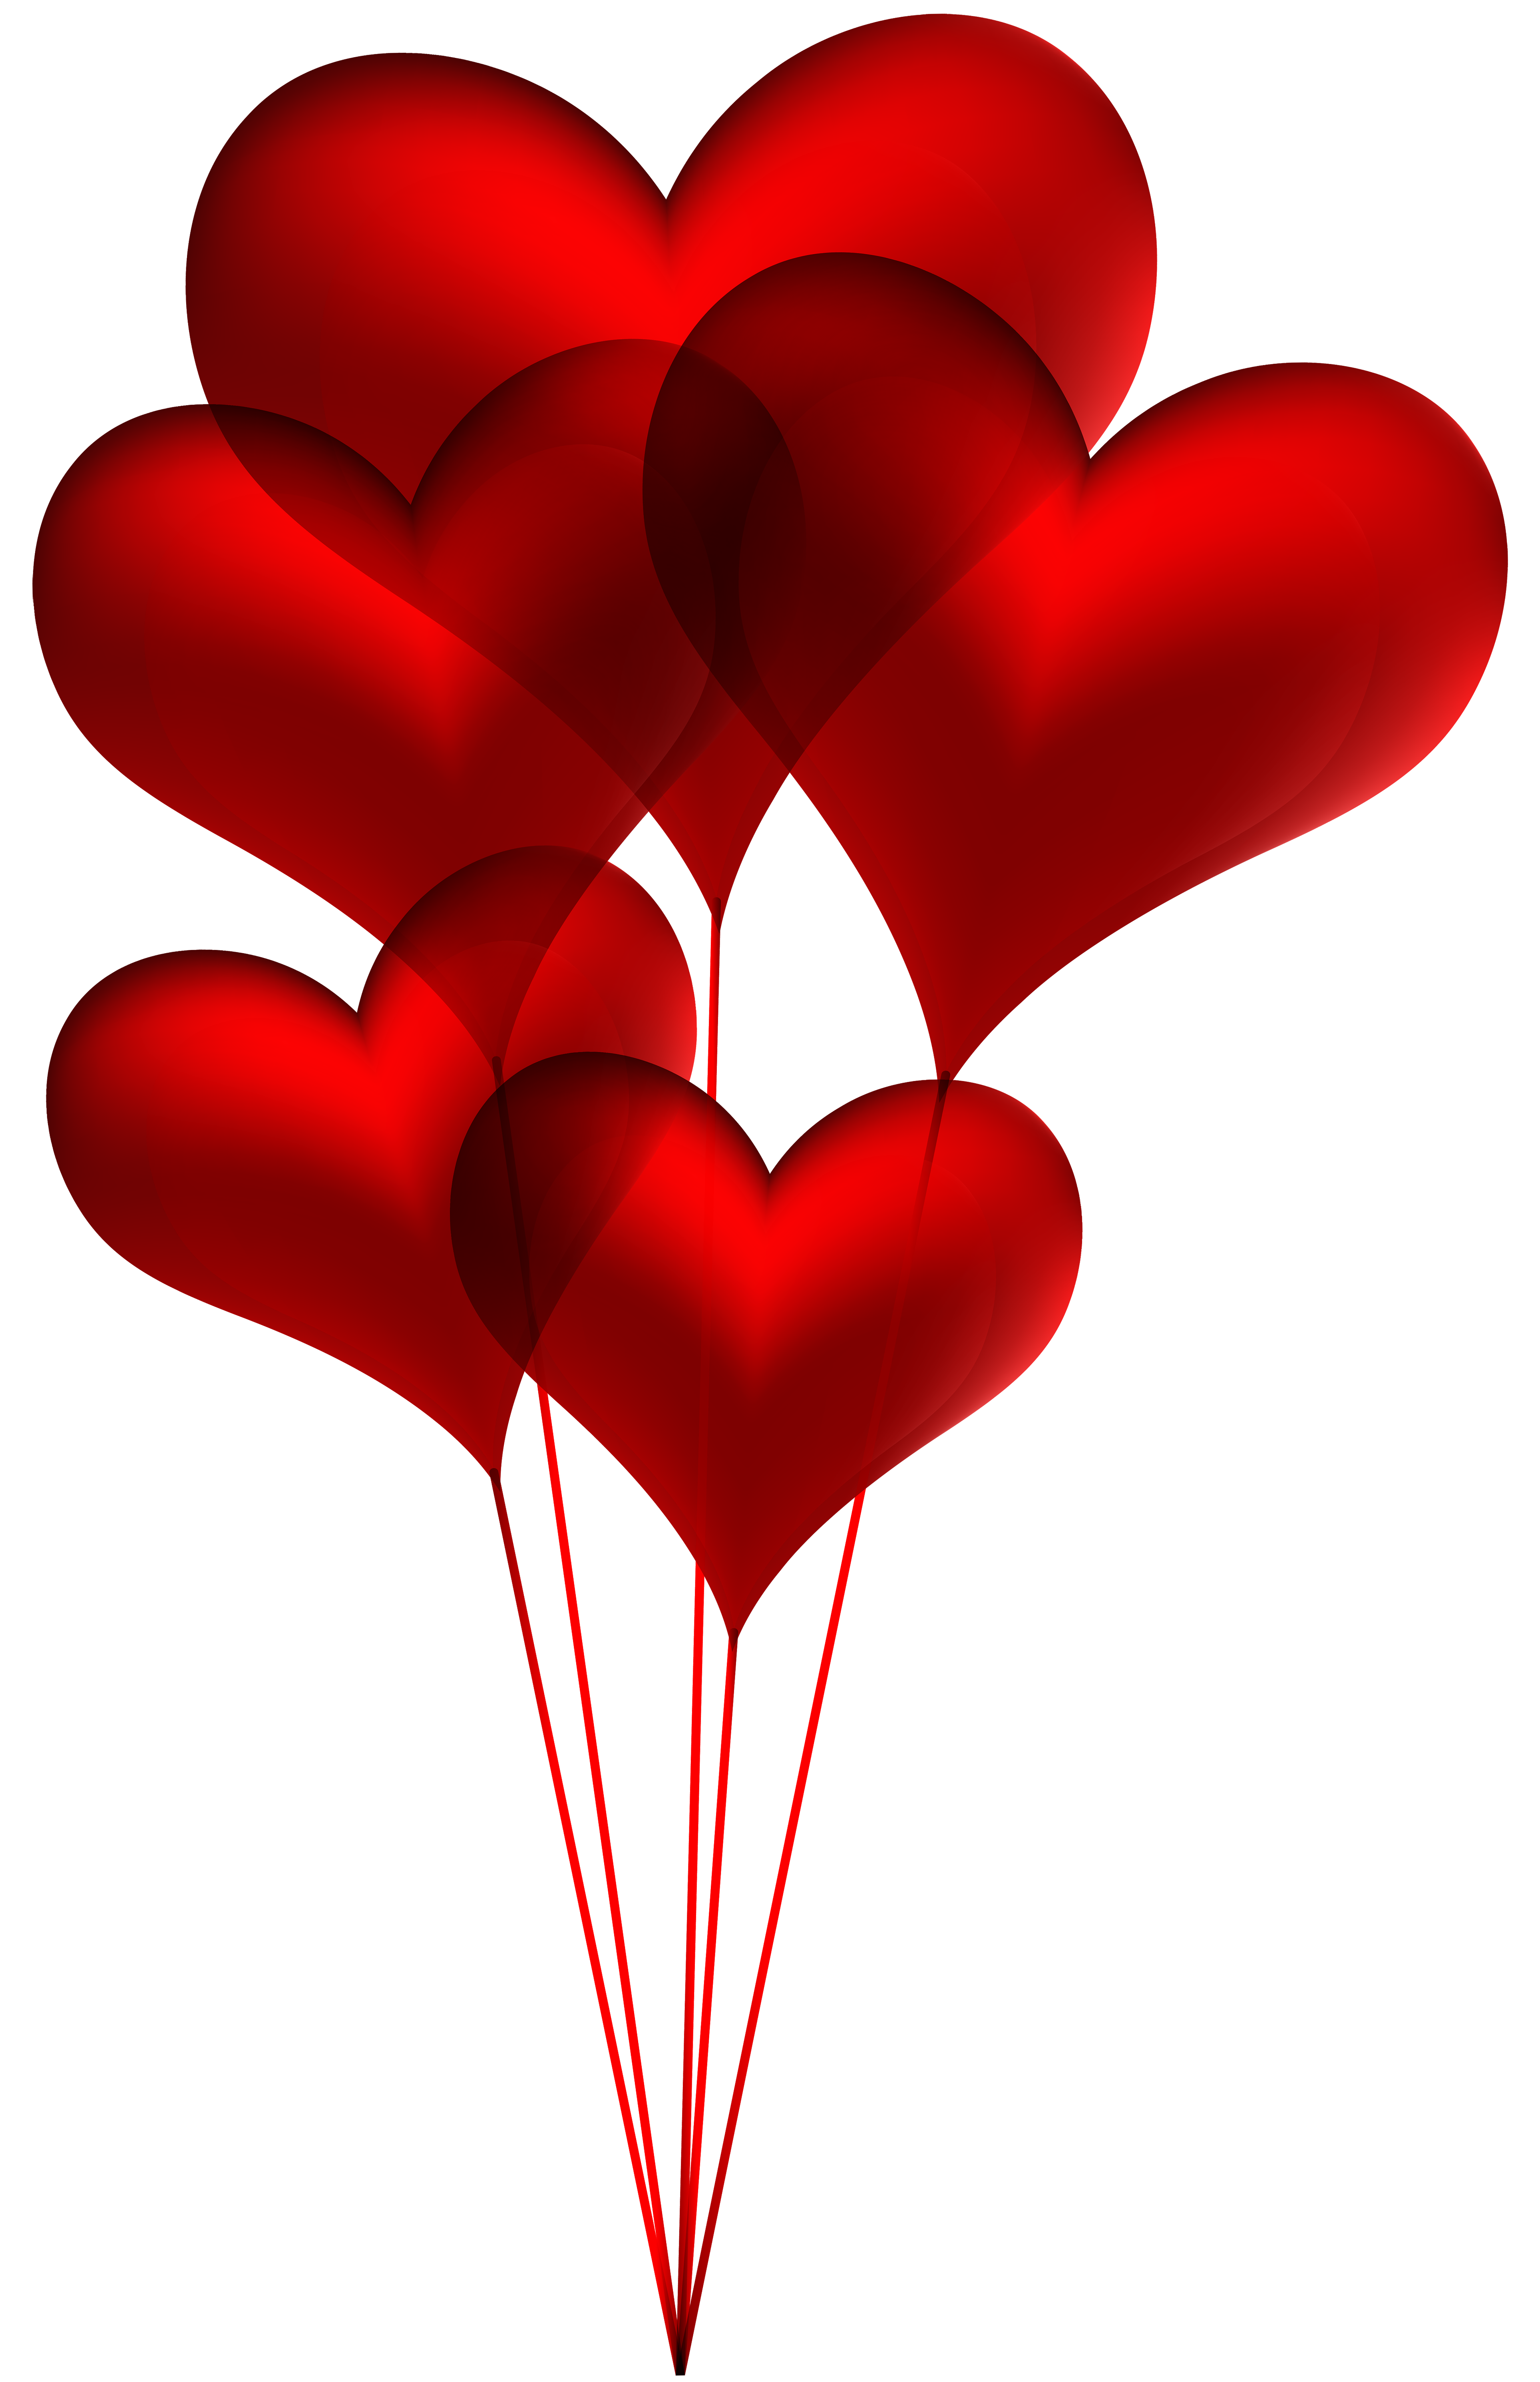 Heart balloon clipart png black and white Red Heart Balloons Transparent PNG Clip Art Image | Gallery ... png black and white